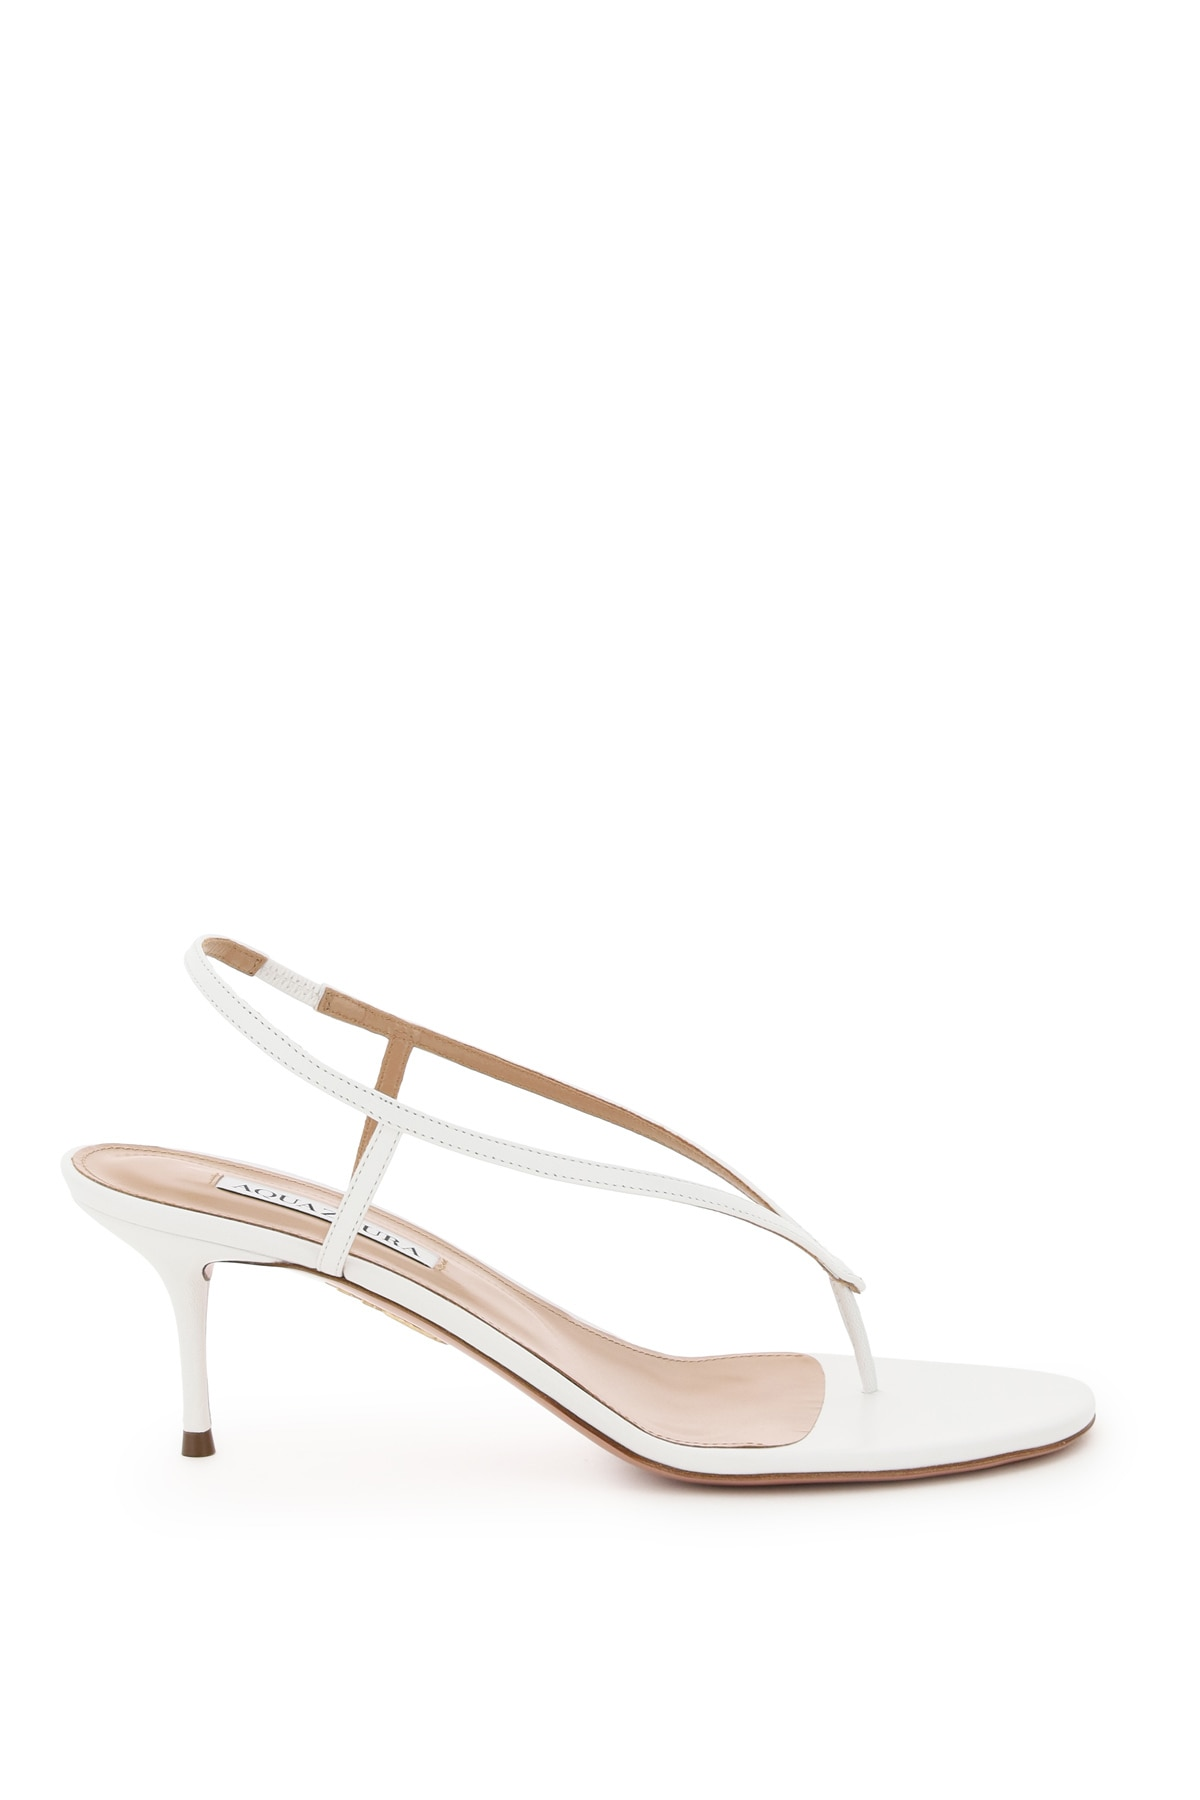 AQUAZZURA DIVINA THONG SANDALS 39 White Leather